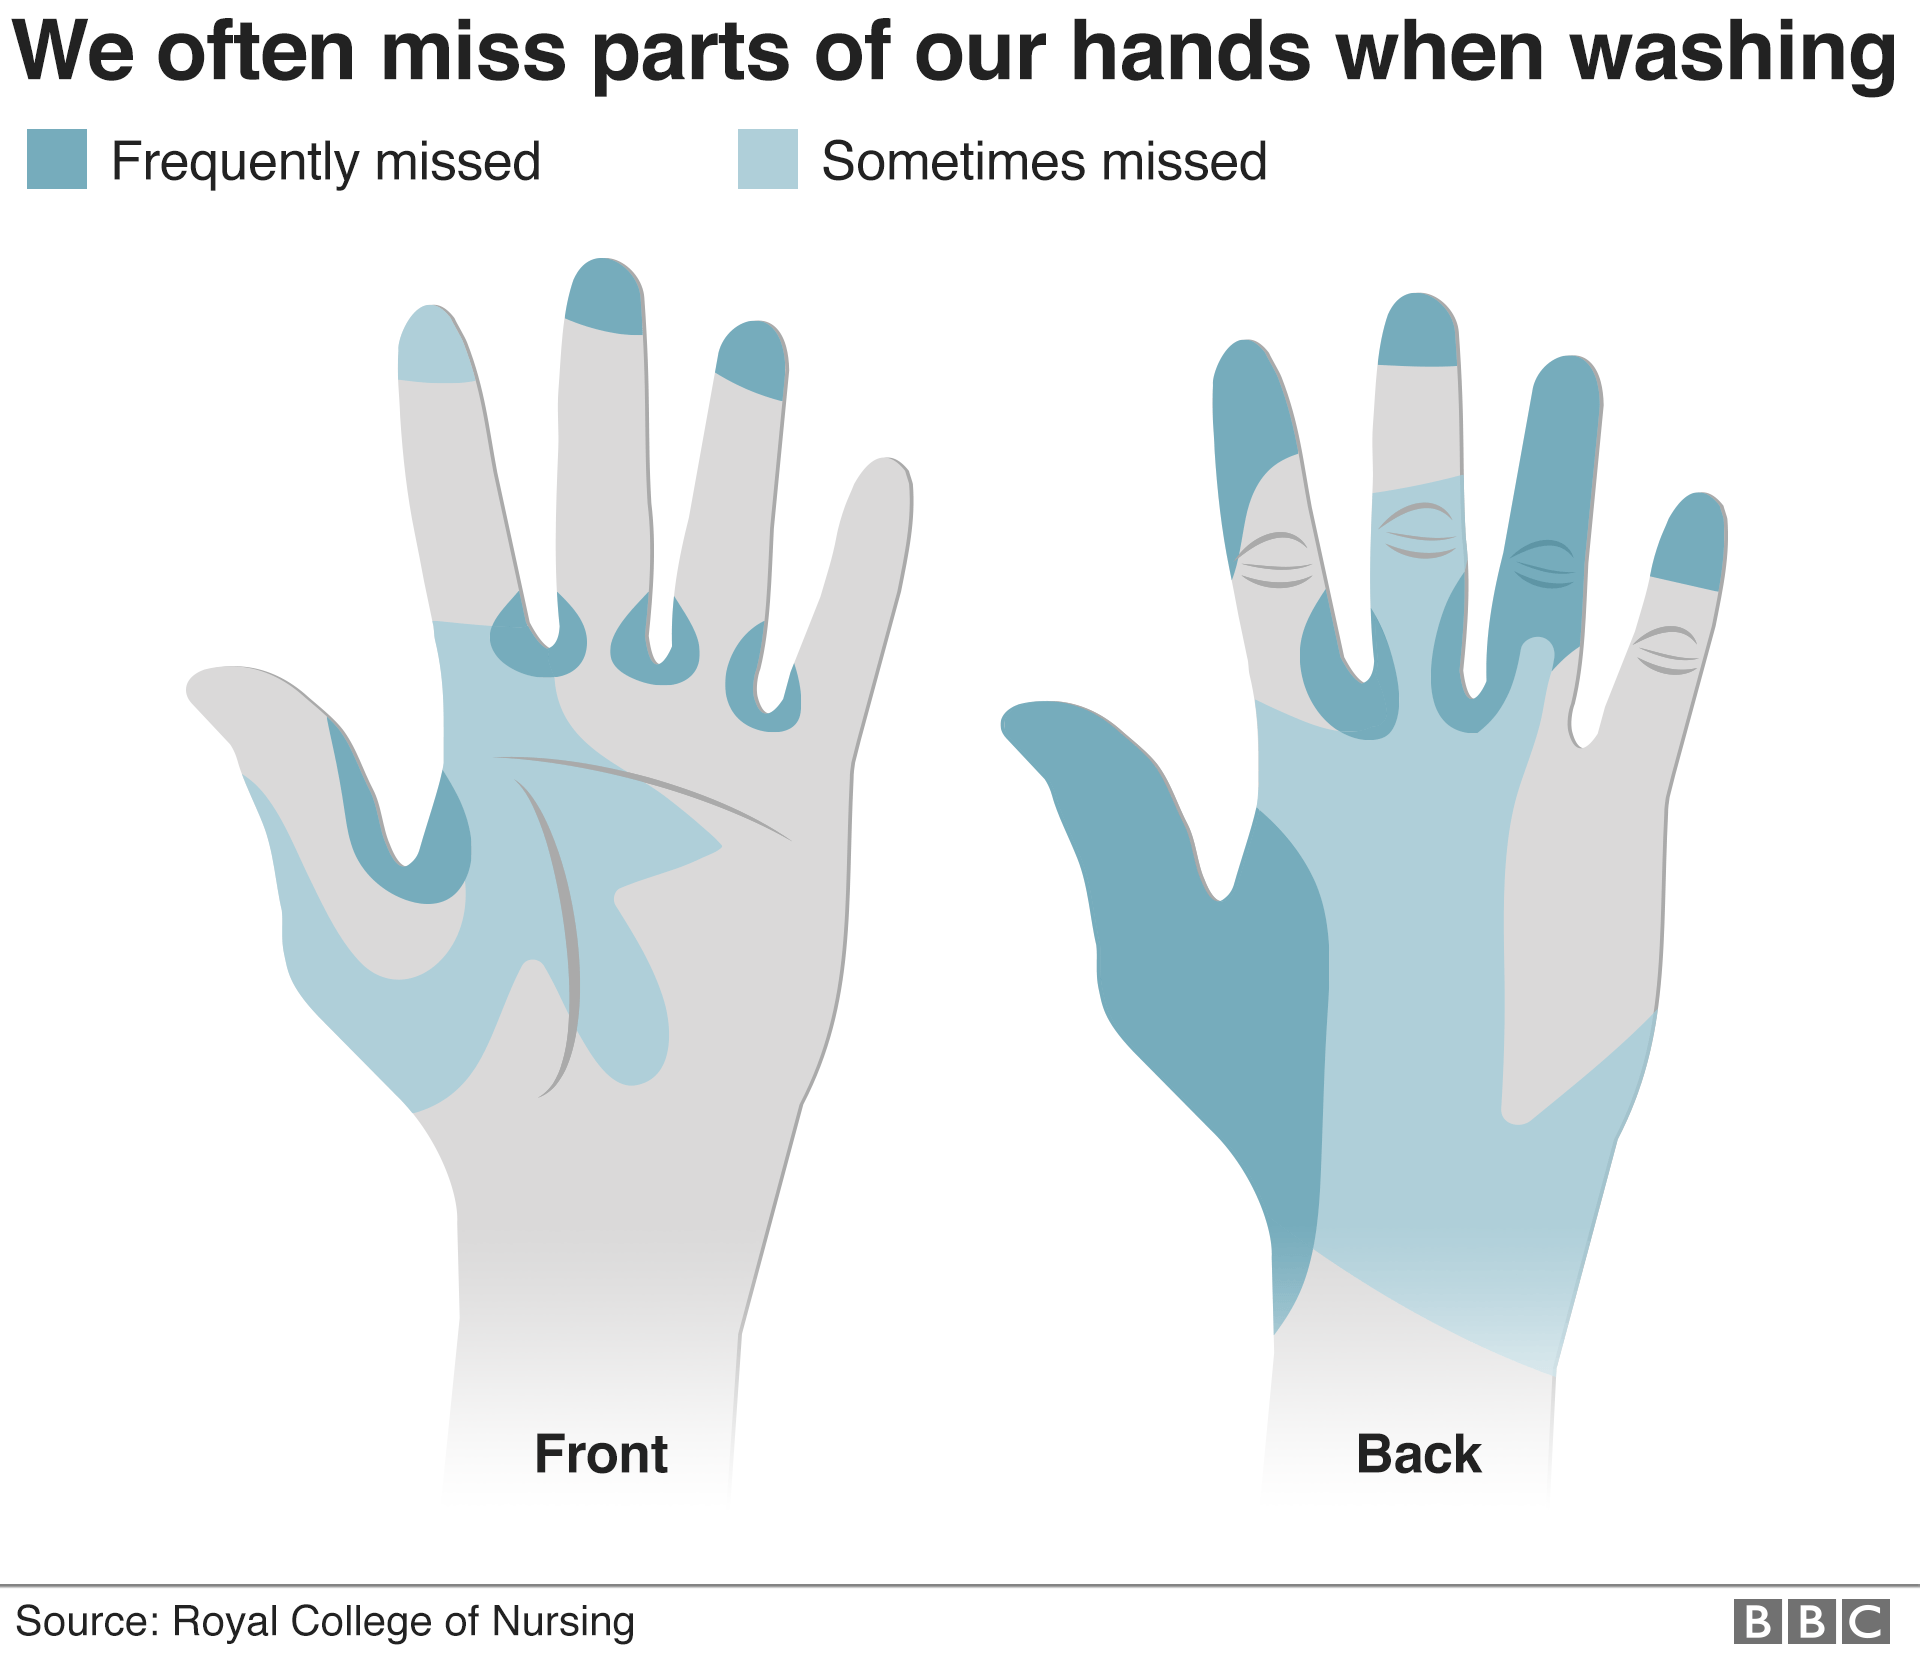 Which parts of hands are often missed when washing